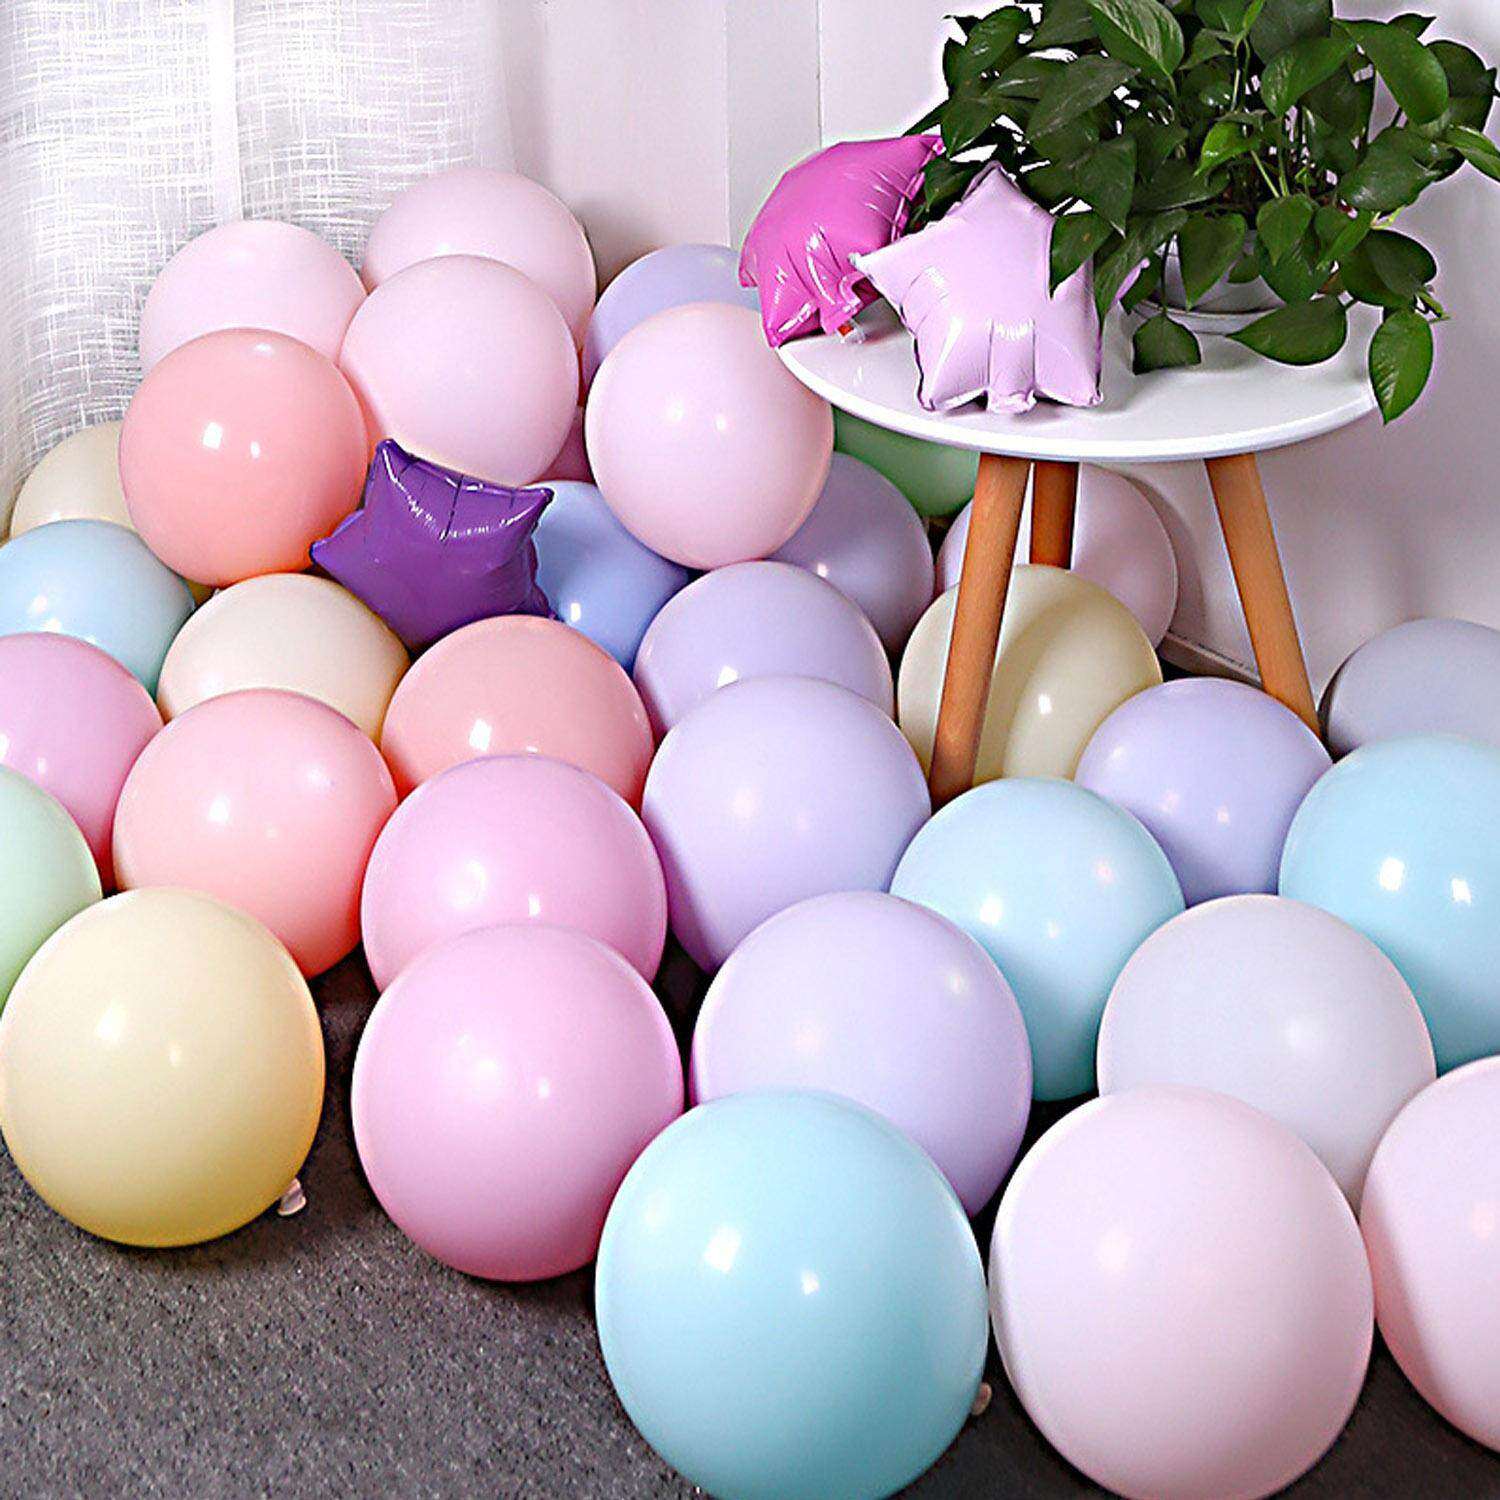 100pcs Vococal 10 Inches Cute Lovely Assorted Macarons Candy Colored Latex Party Balloons For Wedding Graduation Birthday New Year Party Supplies By Vococal Shop.